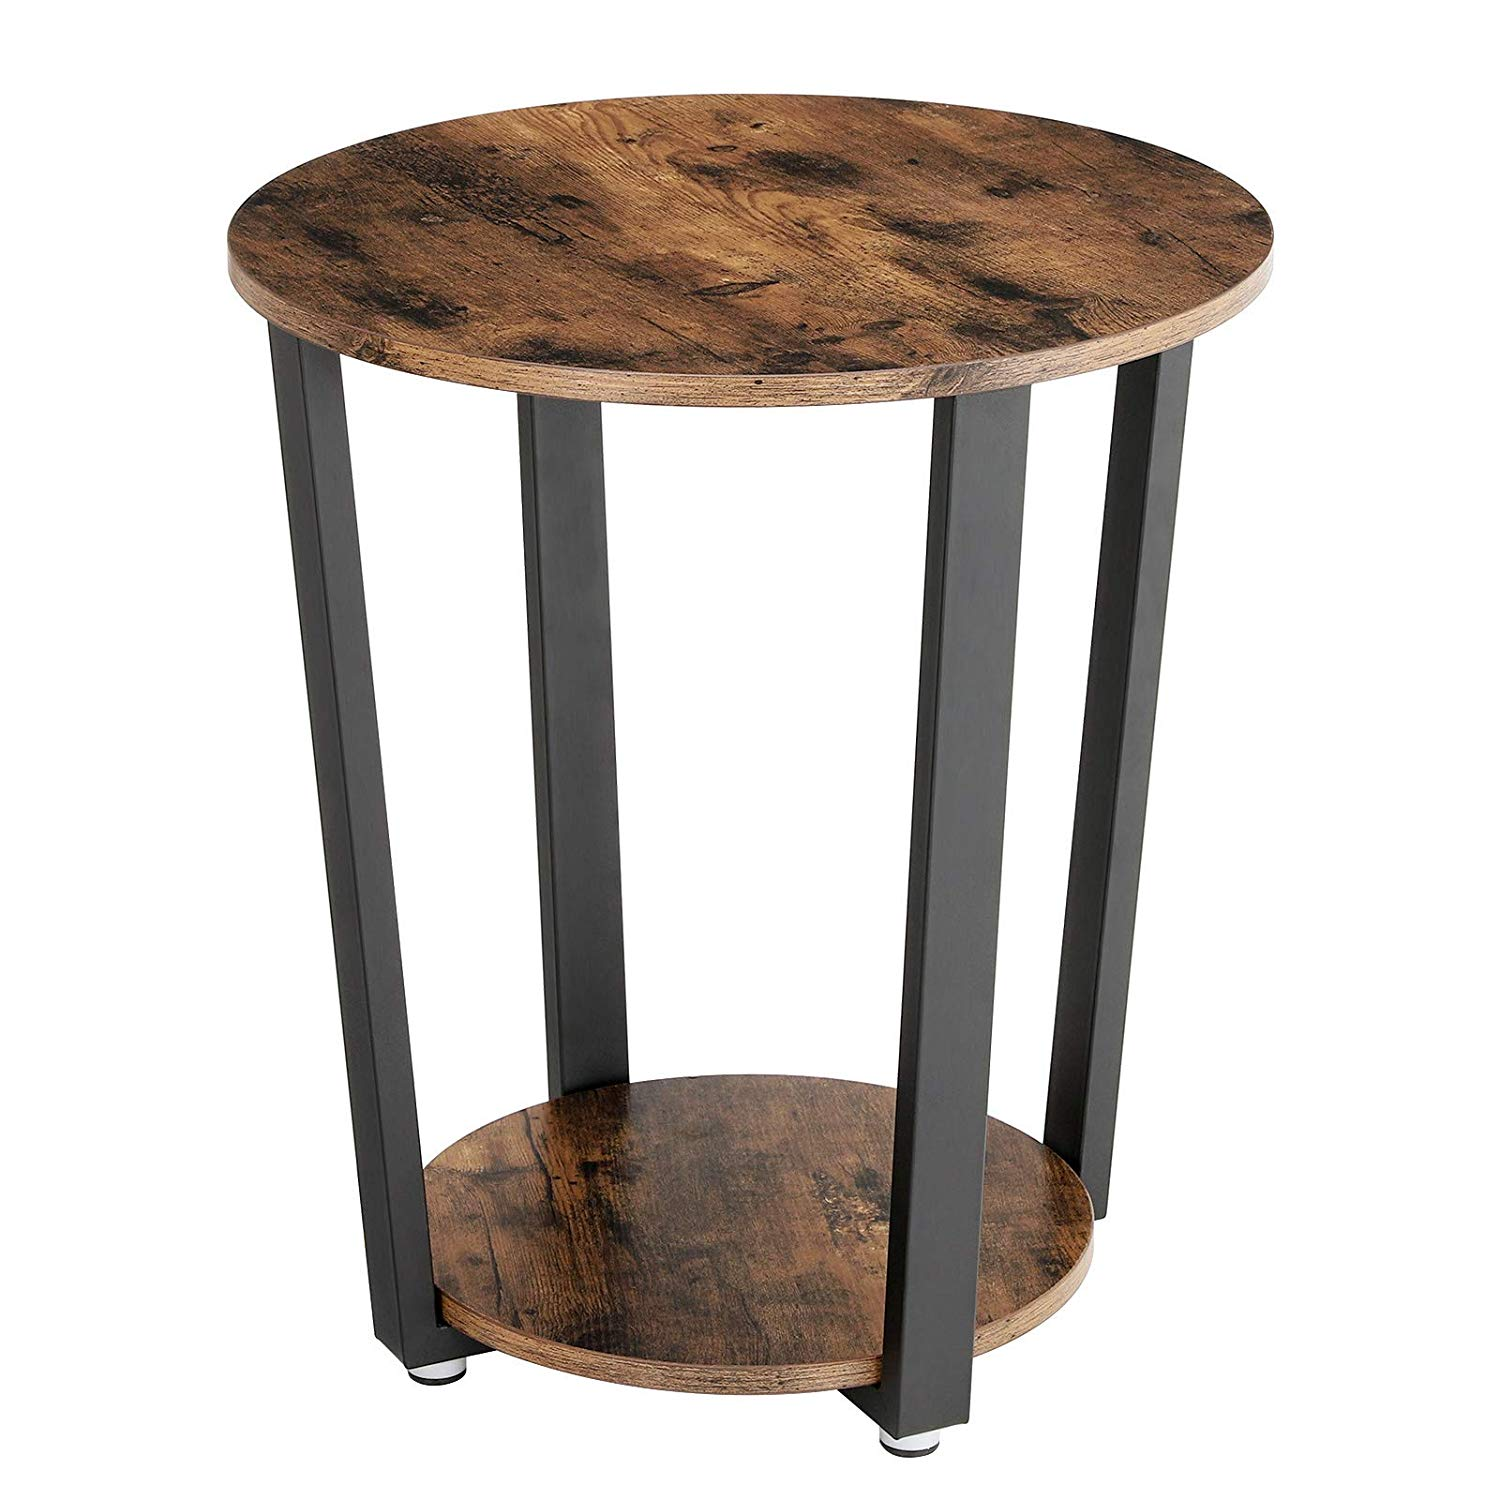 vasagle industrial end table metal side round coffee tables and sofa with storage rack stable sturdy construction easy assembly wood look accent vintage patio furniture trunk